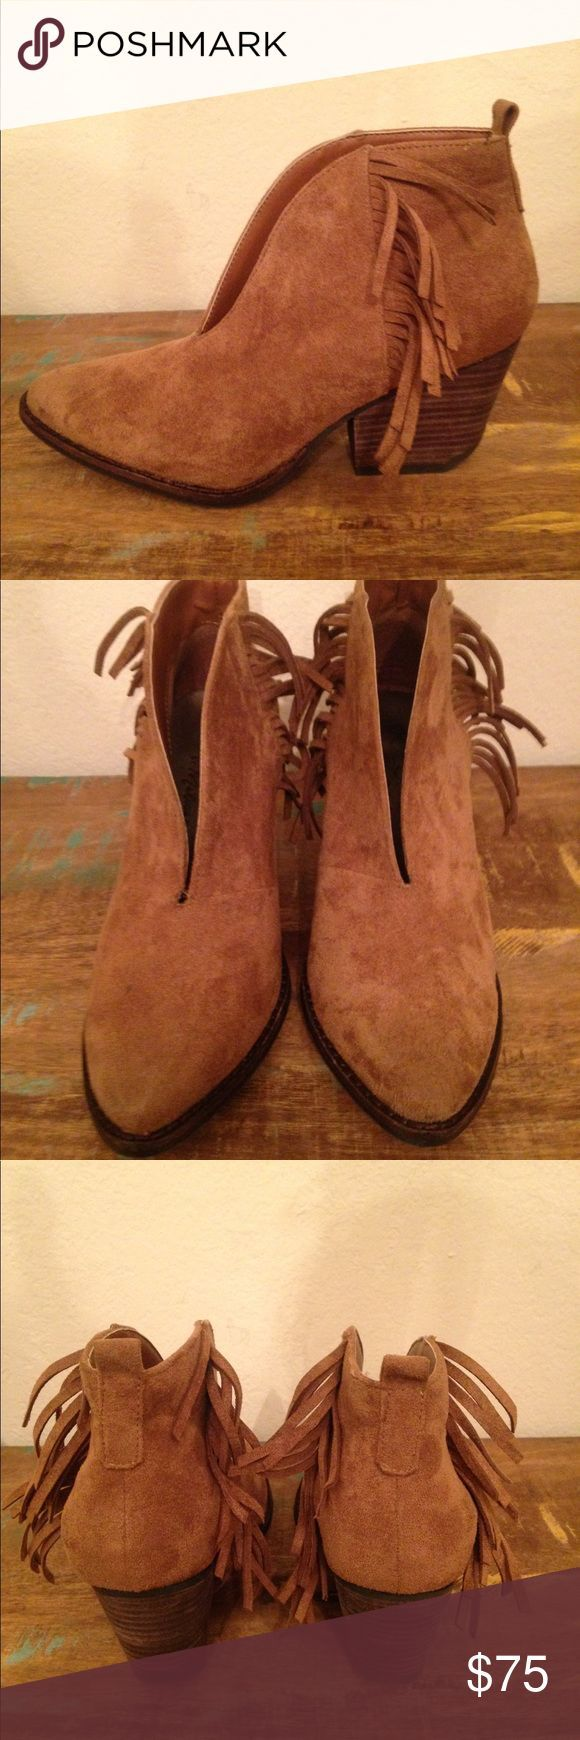 """GREAT COND BROWN FRINGE BOOTIE COCONUT MATISSE 7 GREAT CONDITION CHESTNUT BROWN FRINGE SIDED BOOTIE with a """"V"""" split in the front which is super cute"""